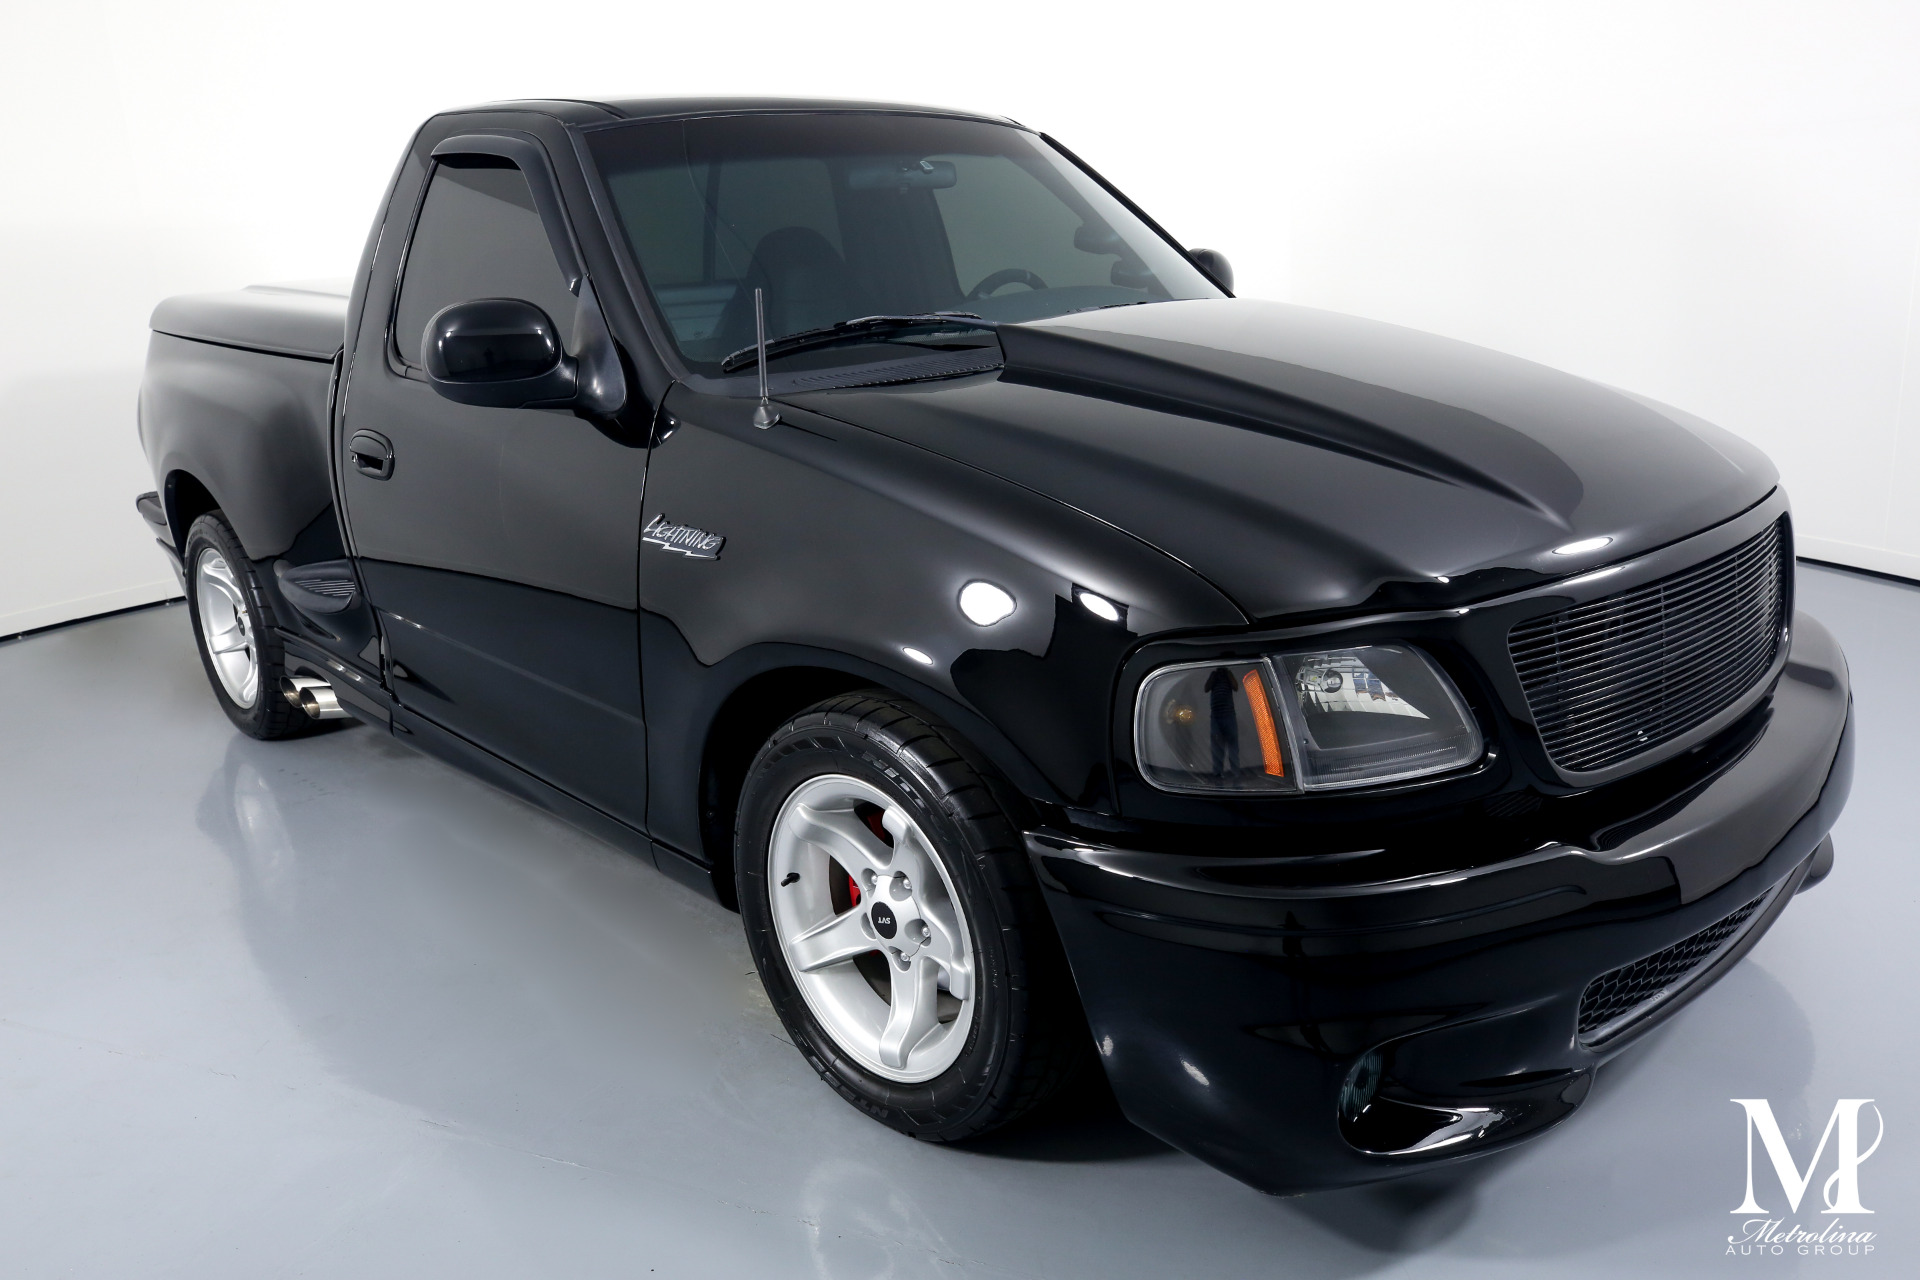 Used 2000 Ford F-150 SVT Lightning for sale $39,996 at Metrolina Auto Group in Charlotte NC 28217 - 2